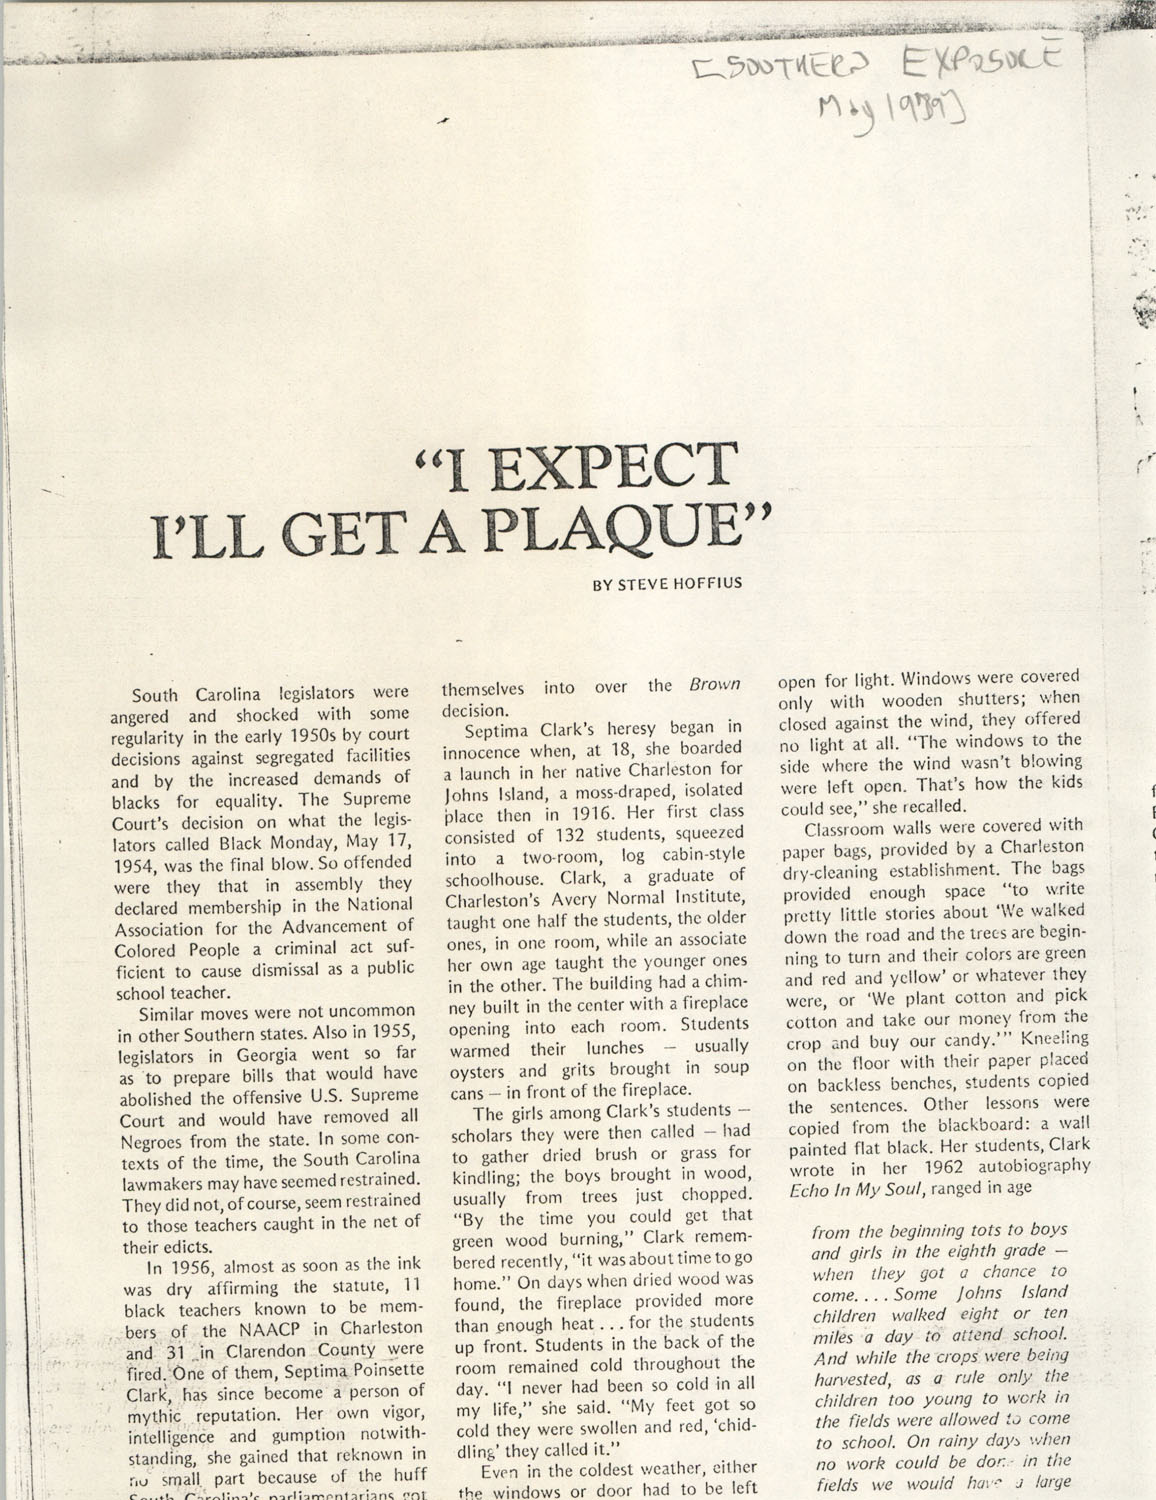 Newspaper Article, May 1979